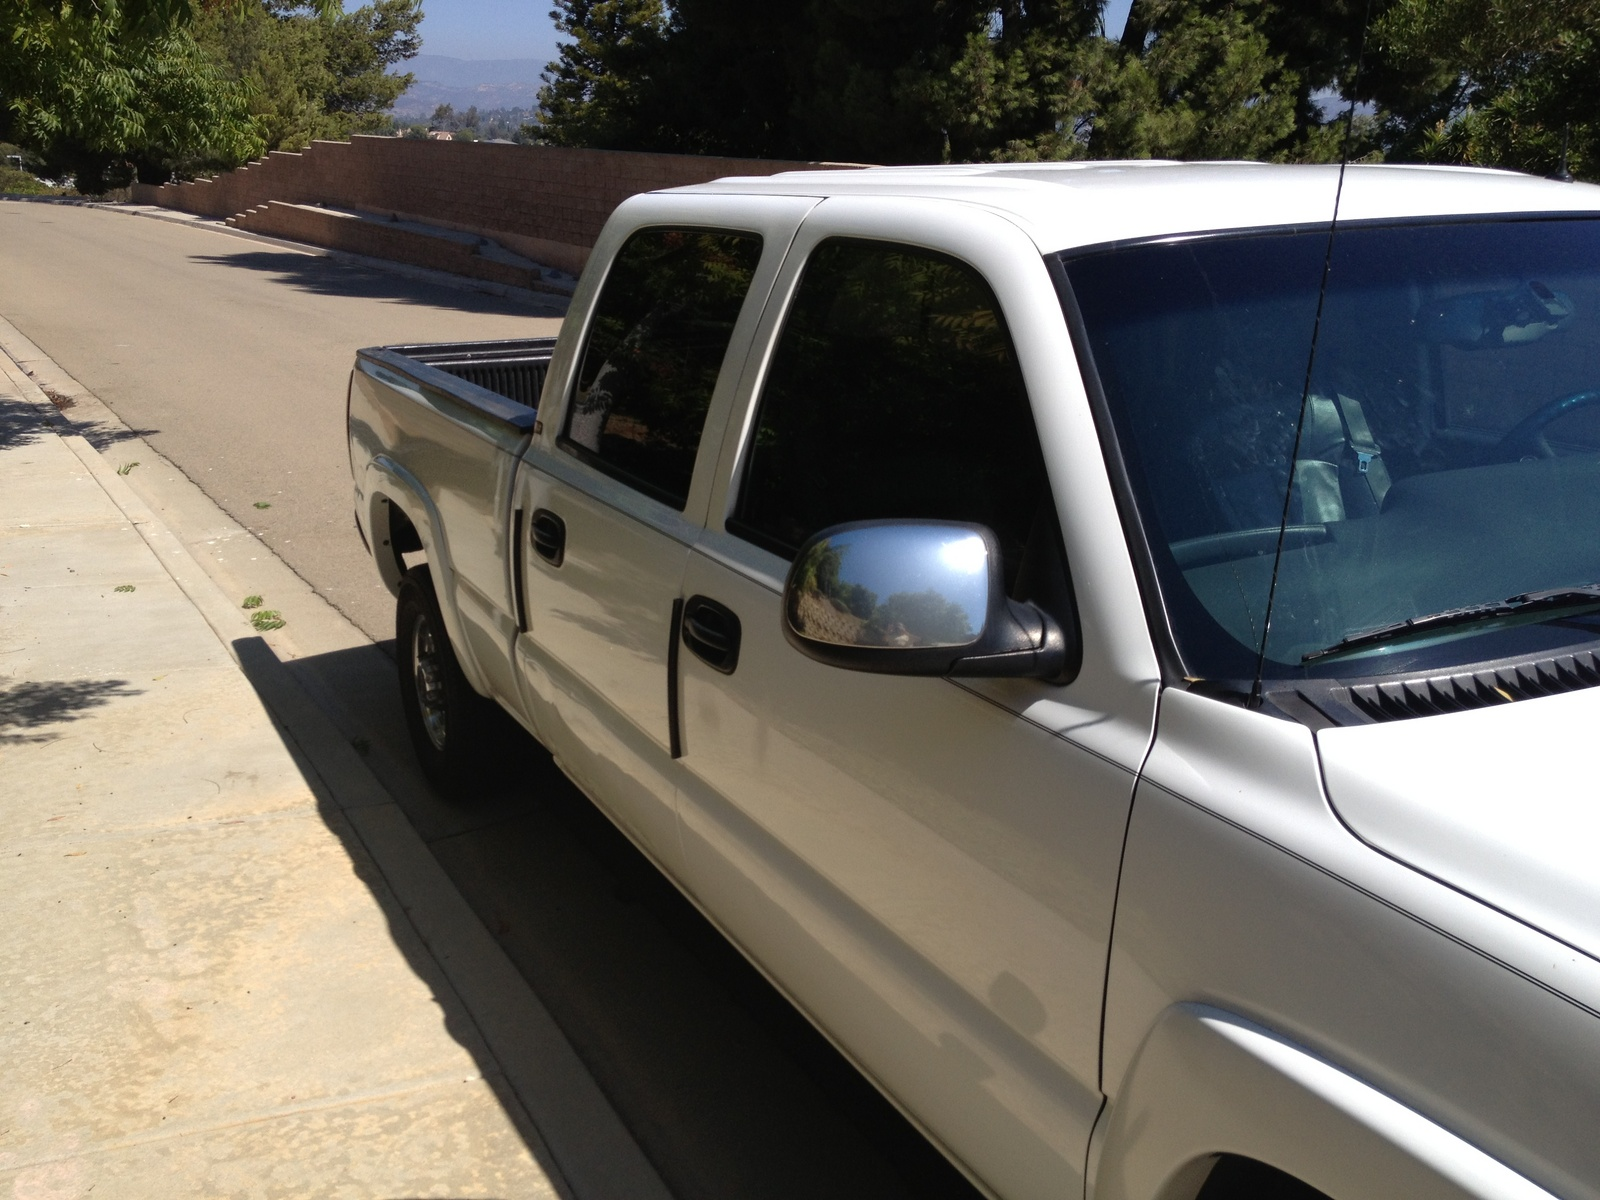 Picture of 2001 GMC Sierra 1500HD 4 Dr SLT Crew Cab SB HD